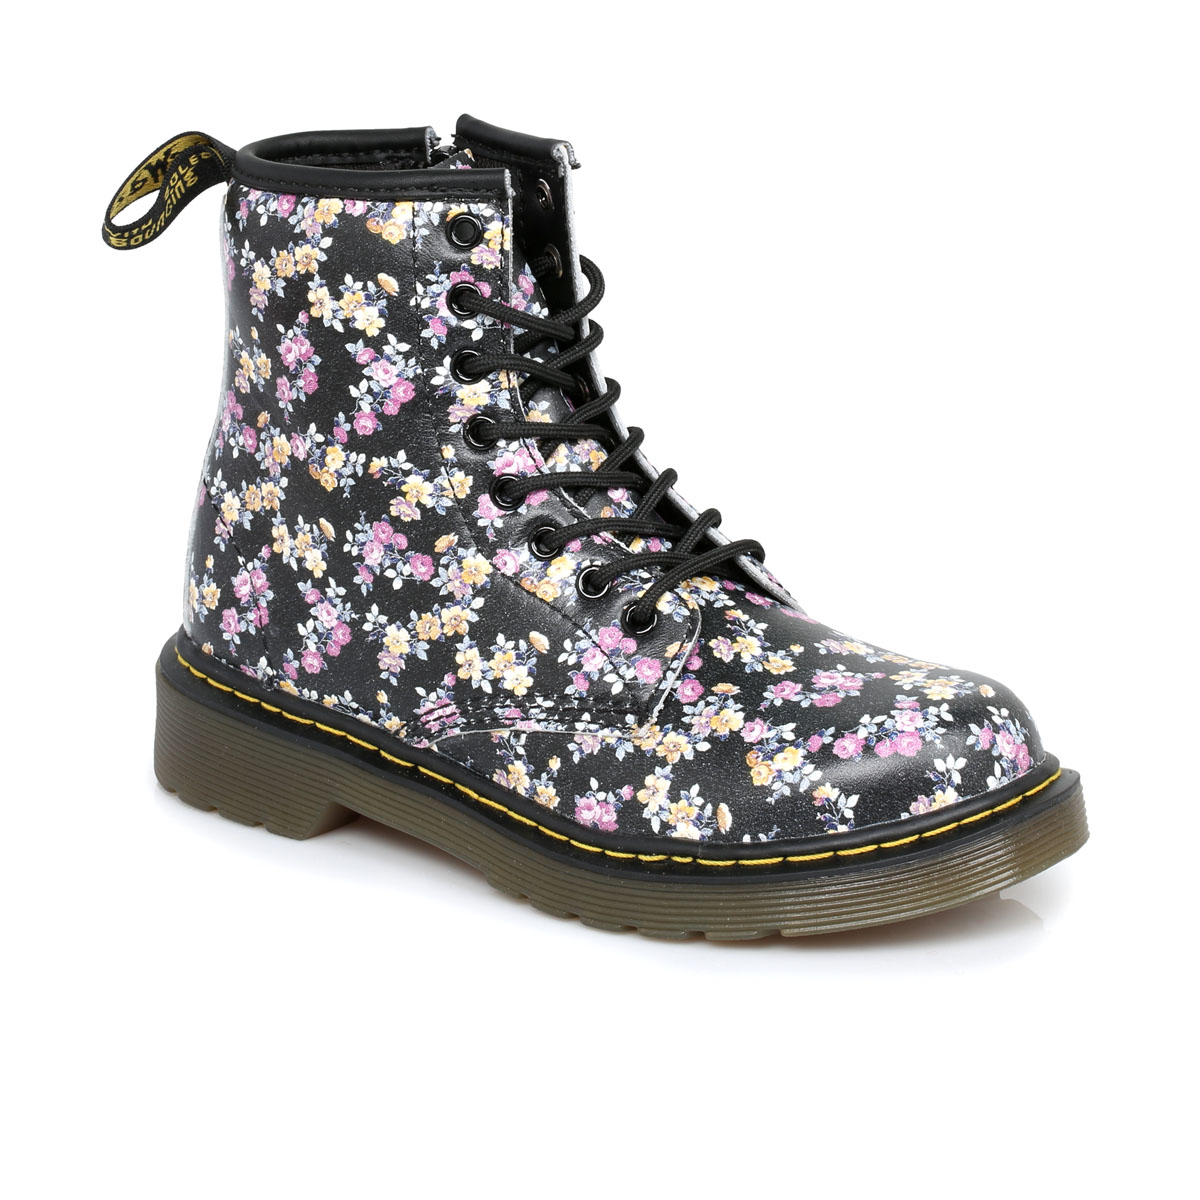 Dr-Martens-Floral-Delaney-Kids-Leather-Boots-sizes-10-2